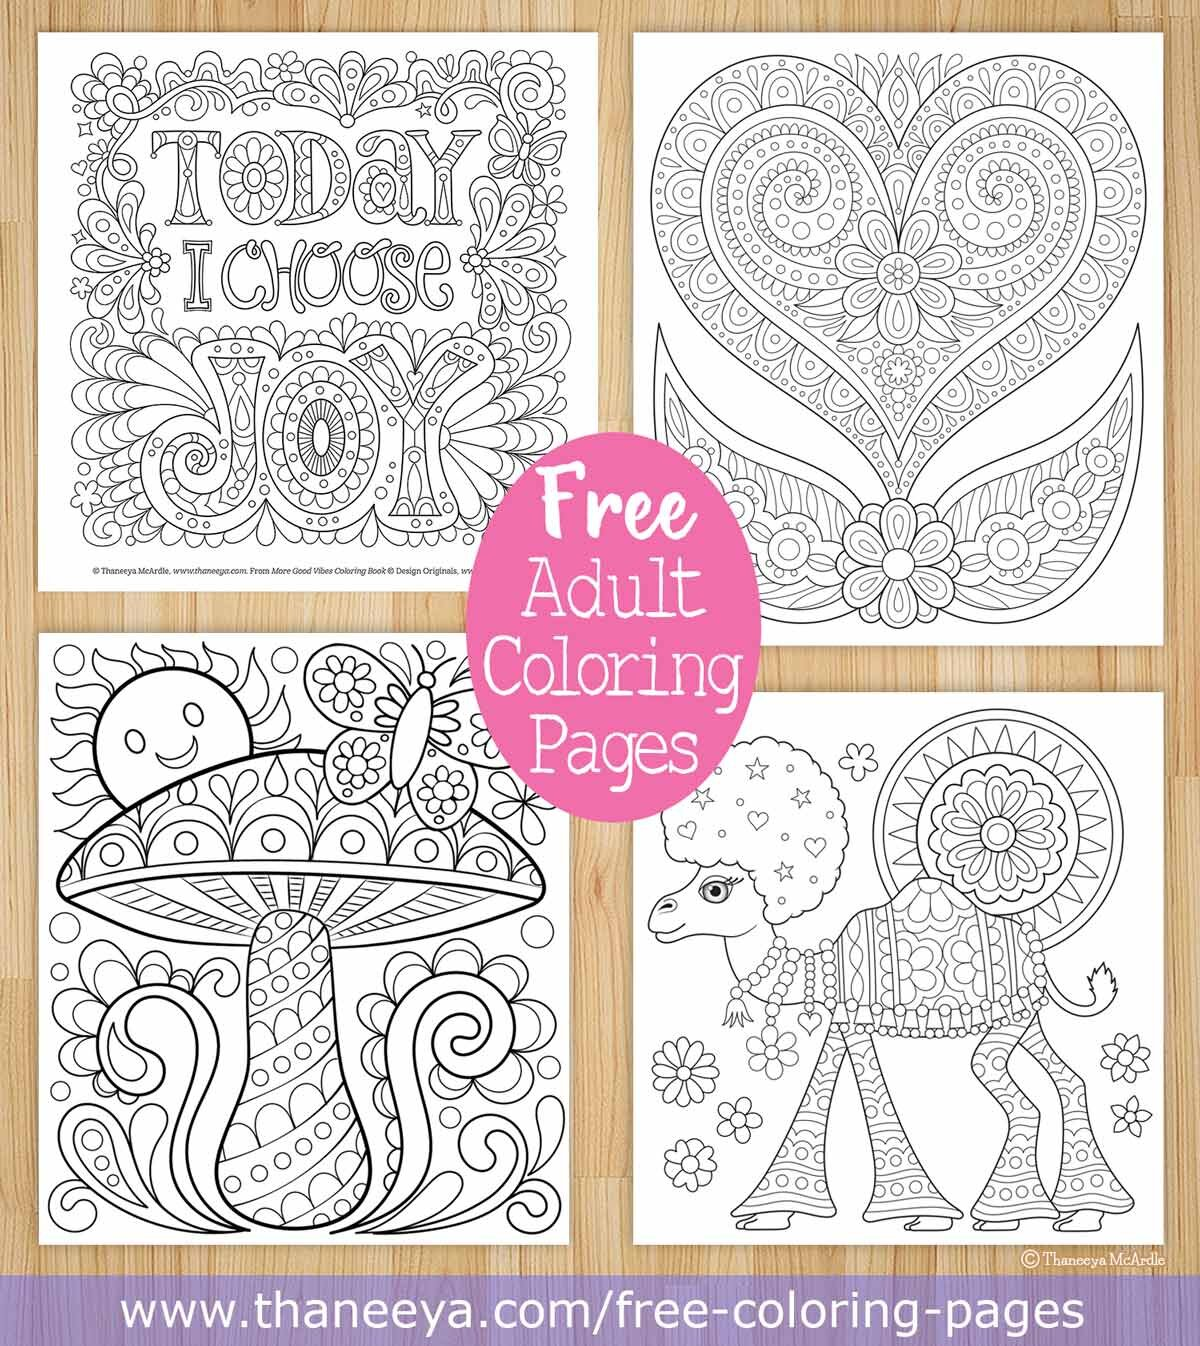 - Free Coloring Pages — Thaneeya.com